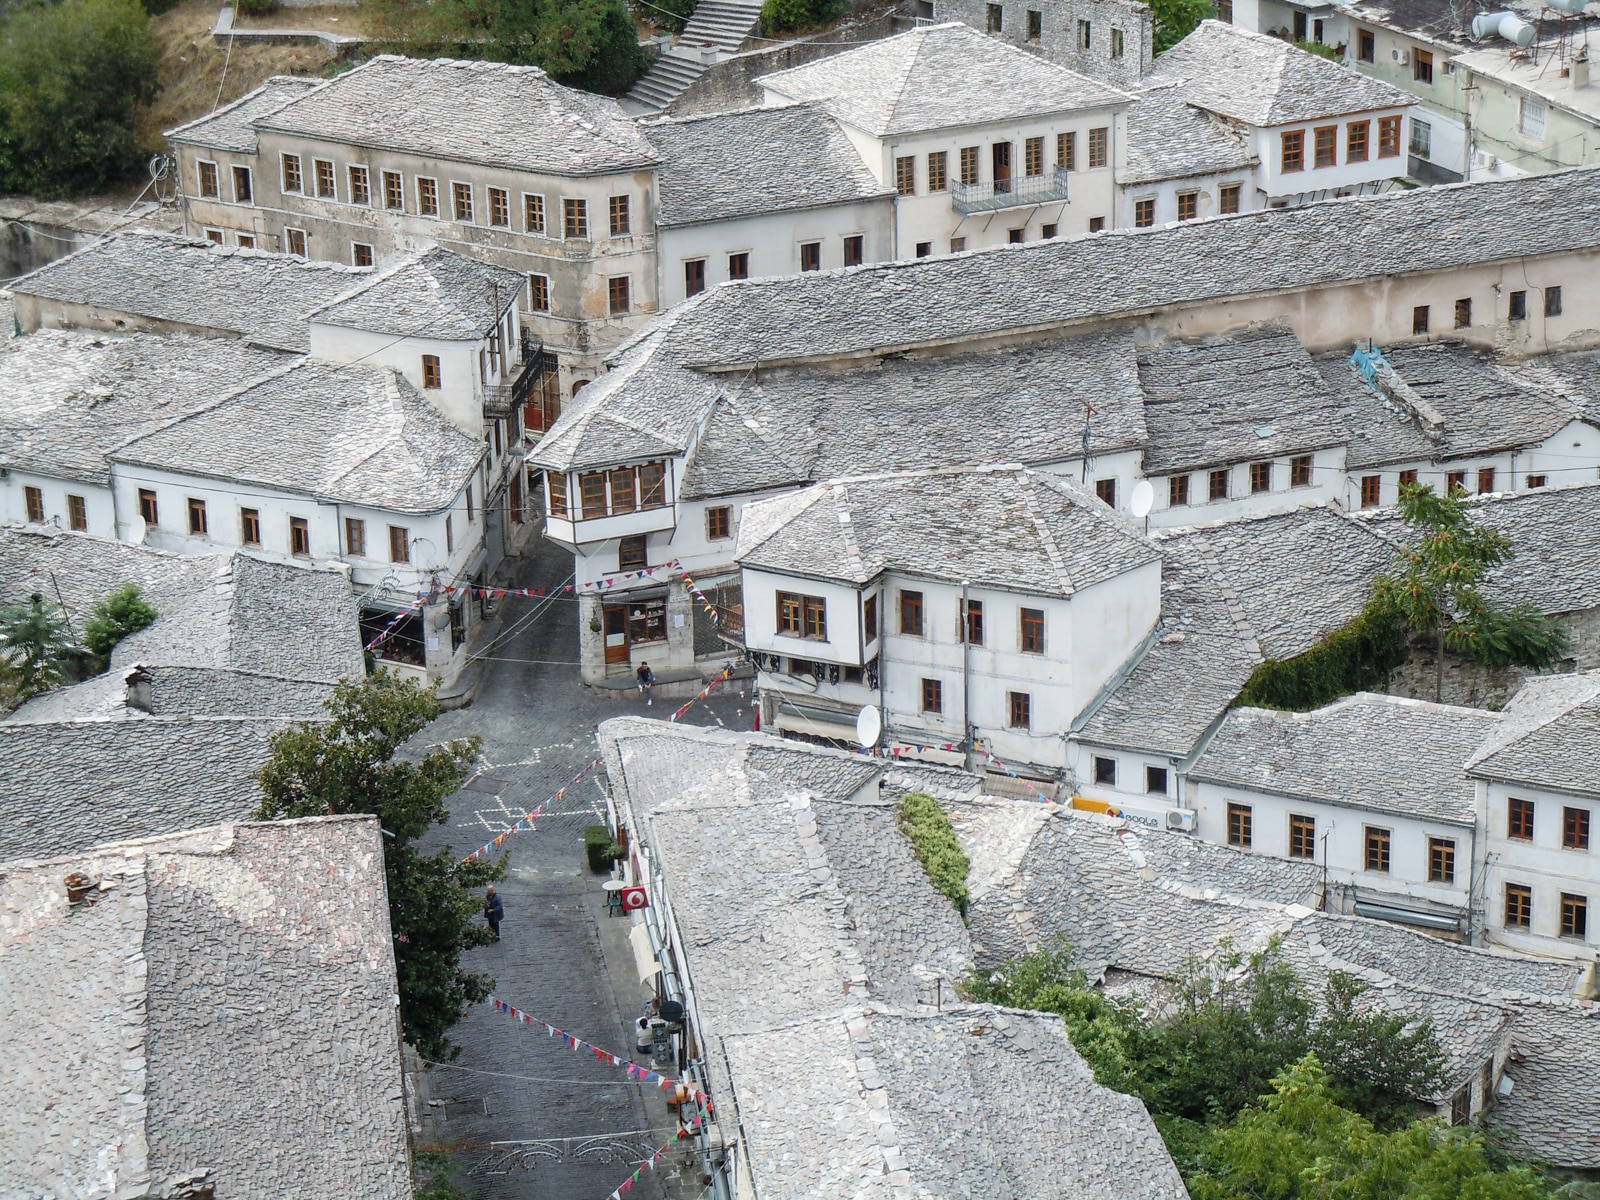 Gjirokastro, one of the country's three UNESCO World Heritage Sites